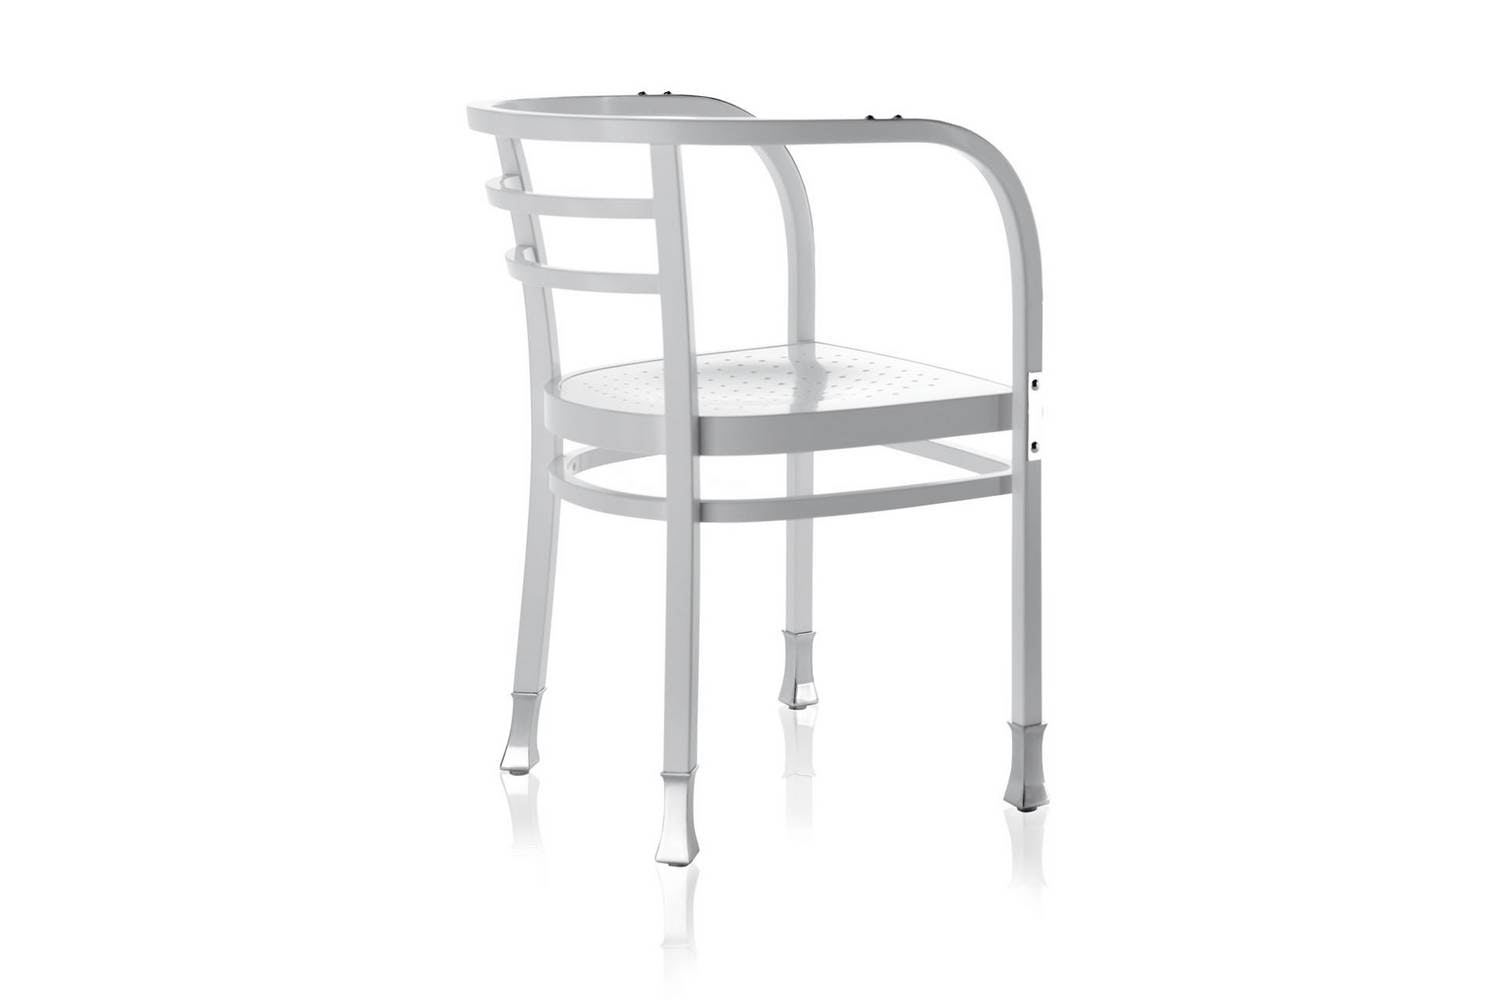 Postsparkasse Chair by Otto Wagner for Wiener GTV Design